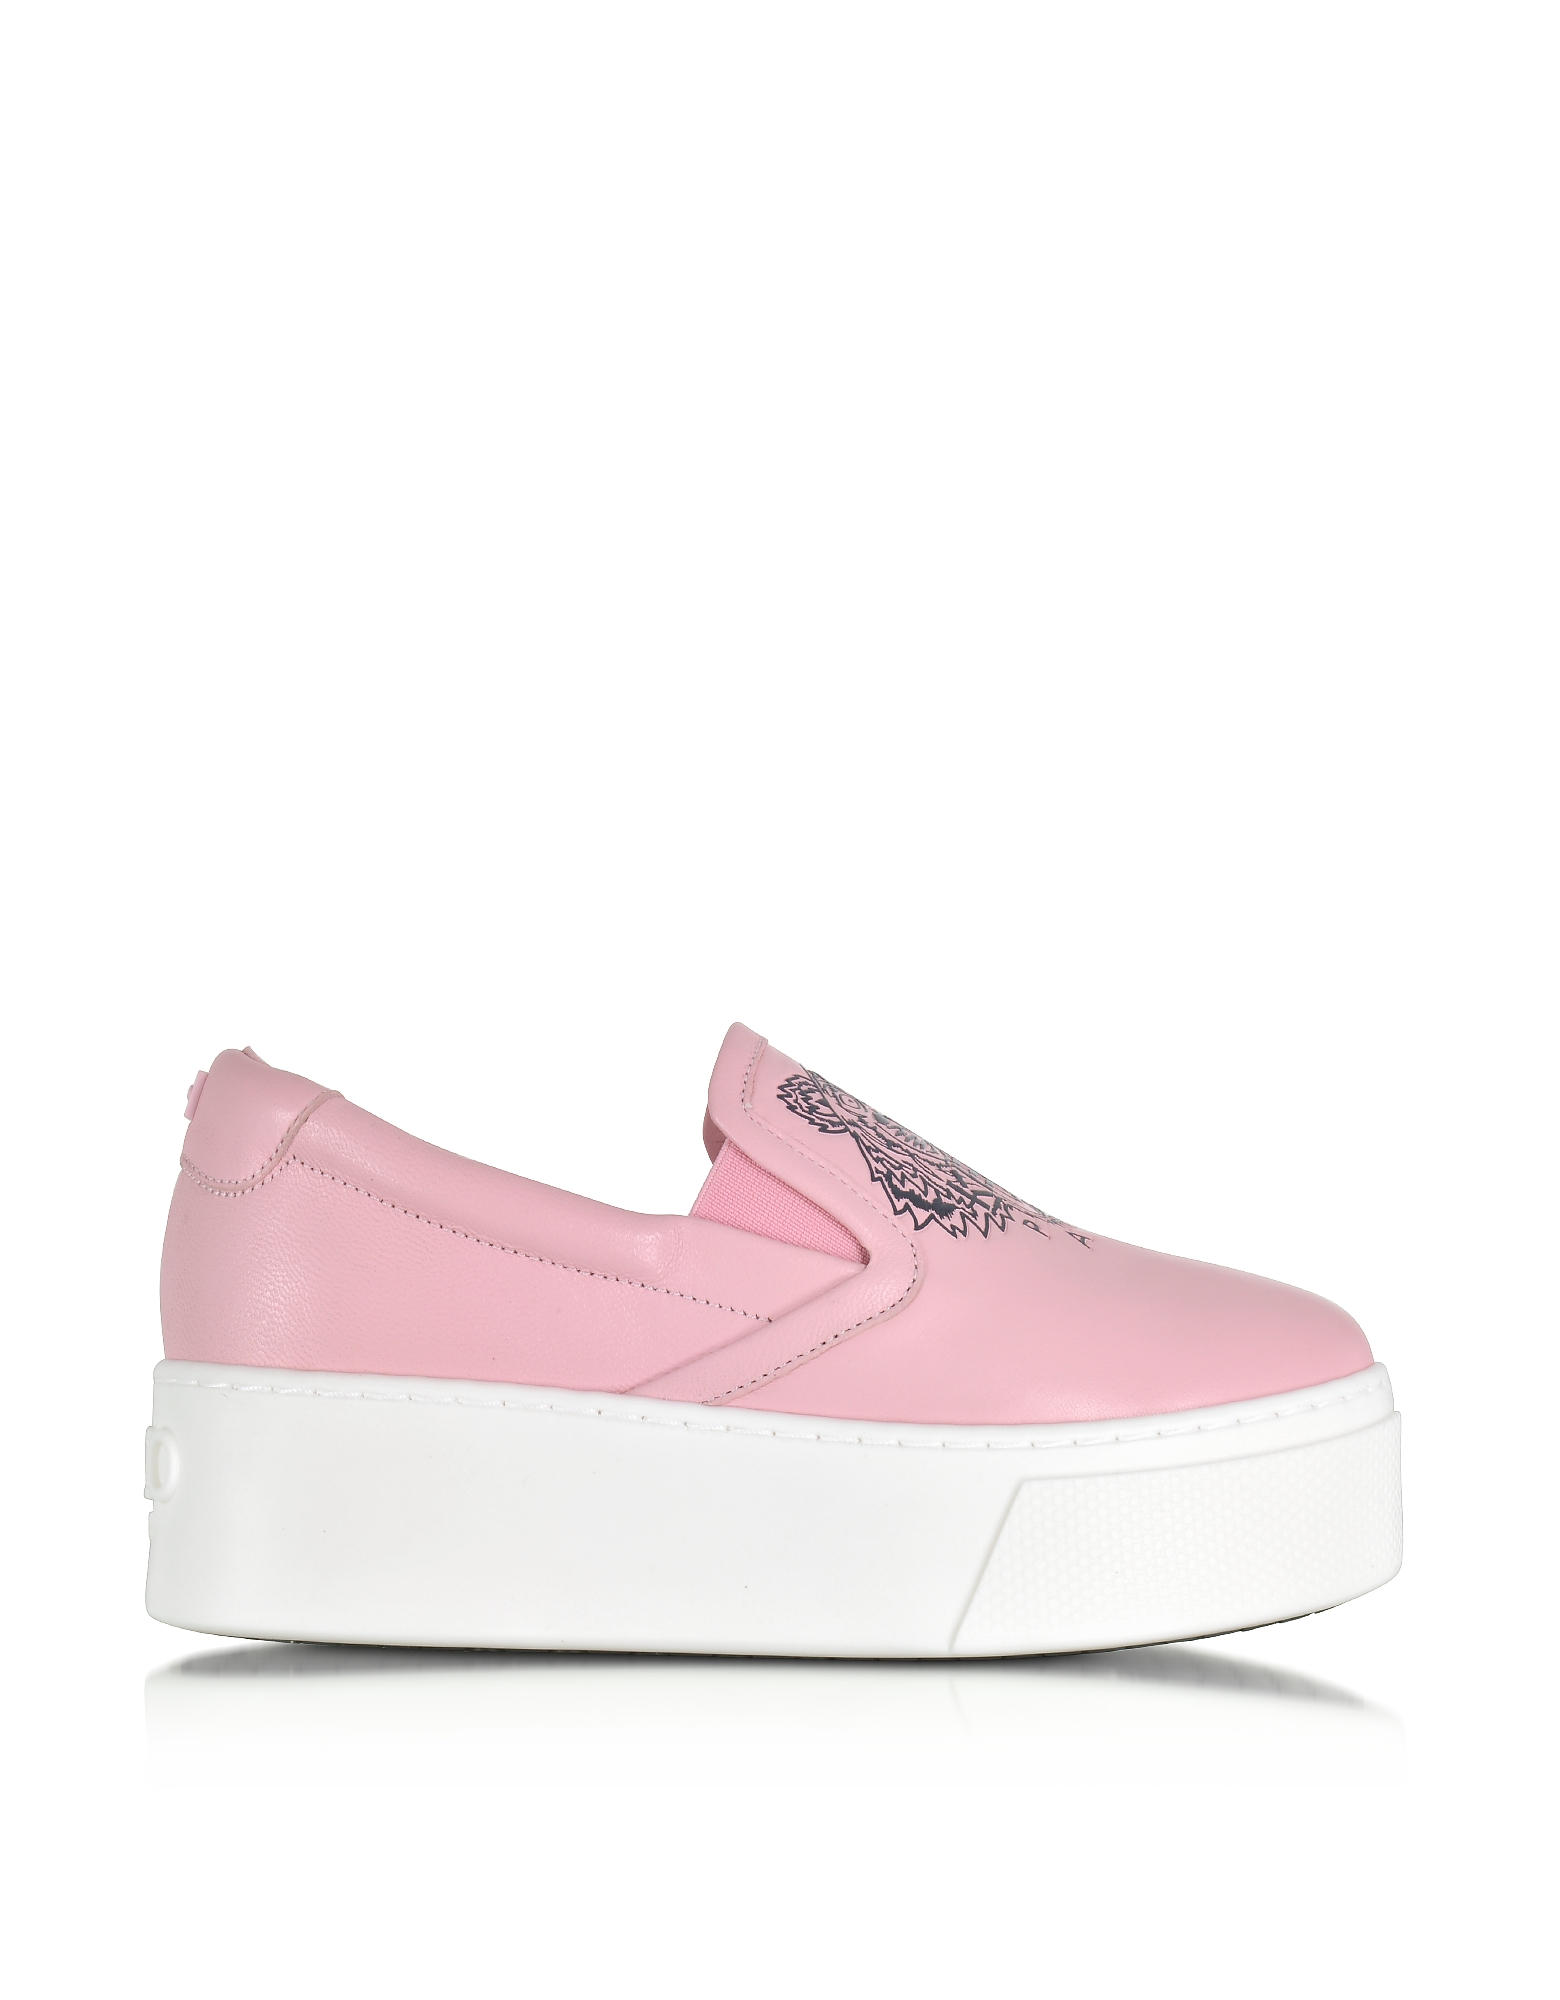 Kenzo Shoes, Pink Leather Tiger Slip on Flatform Sneakers